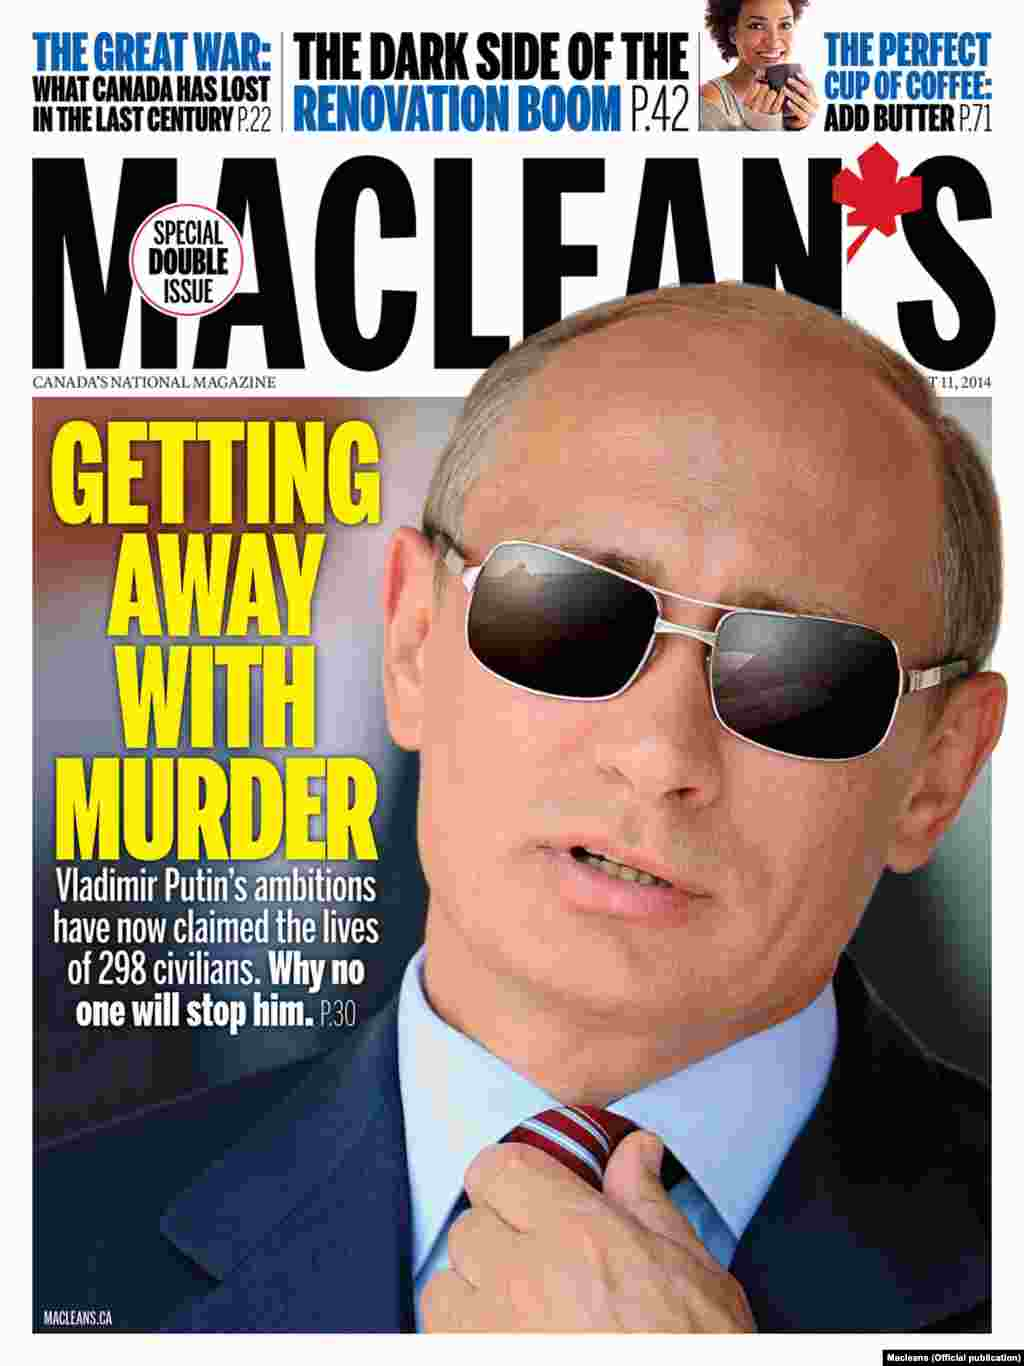 """Getting Away With Murder"" -- Canada's ""Maclean's"" weekly news magazine puts the blame for the MH17 crash squarely on ""Putin's ambitions."""